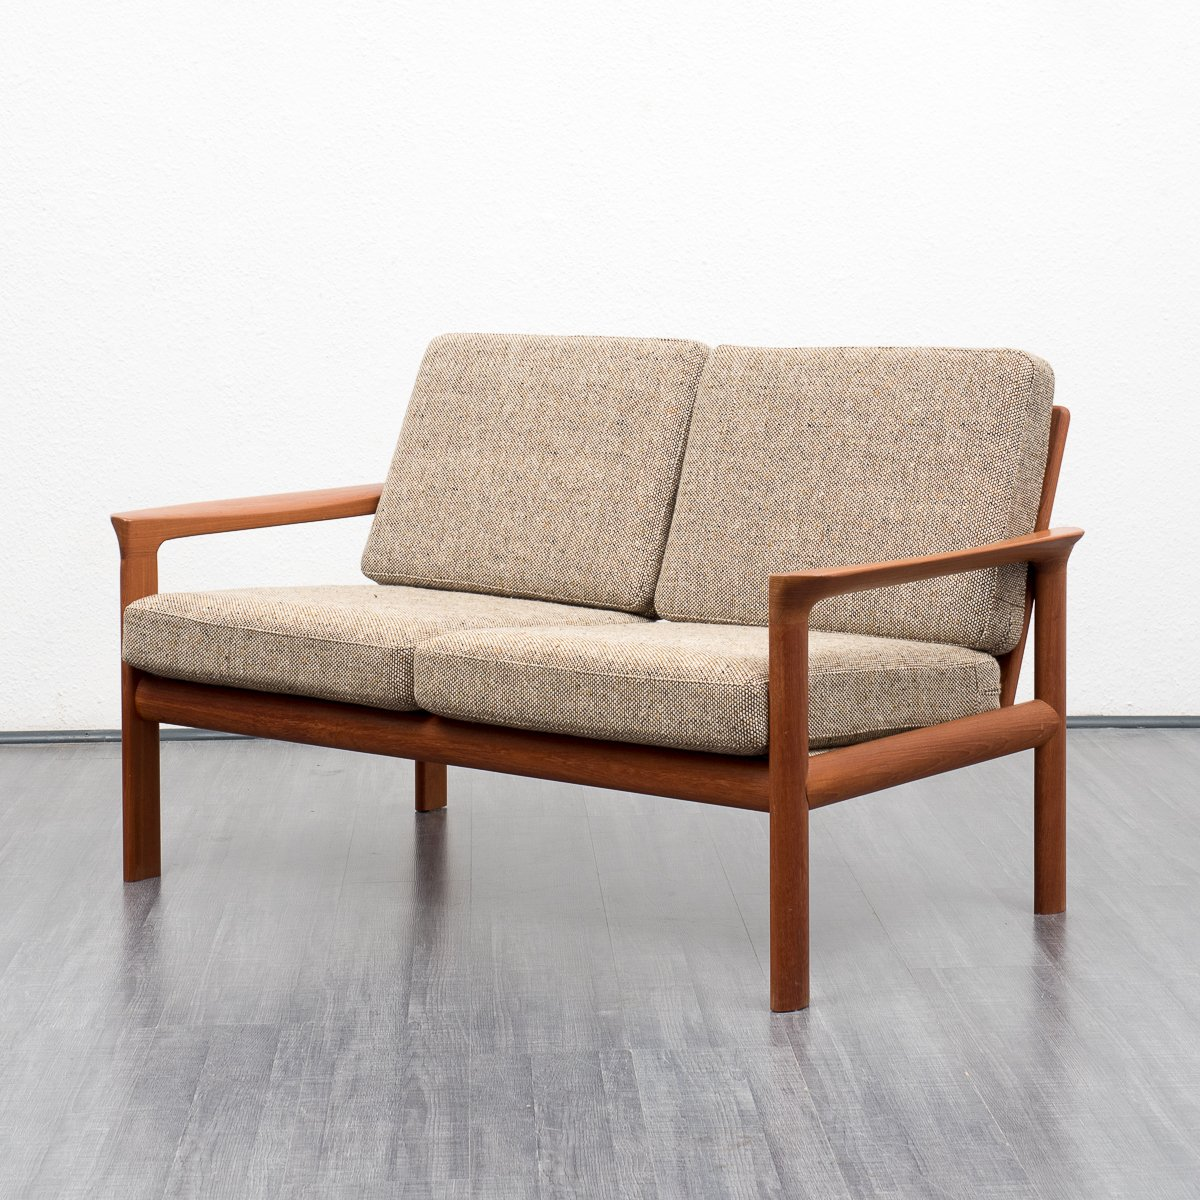 Mid century danish two seater sofa with stool by sven for Sofa stool design